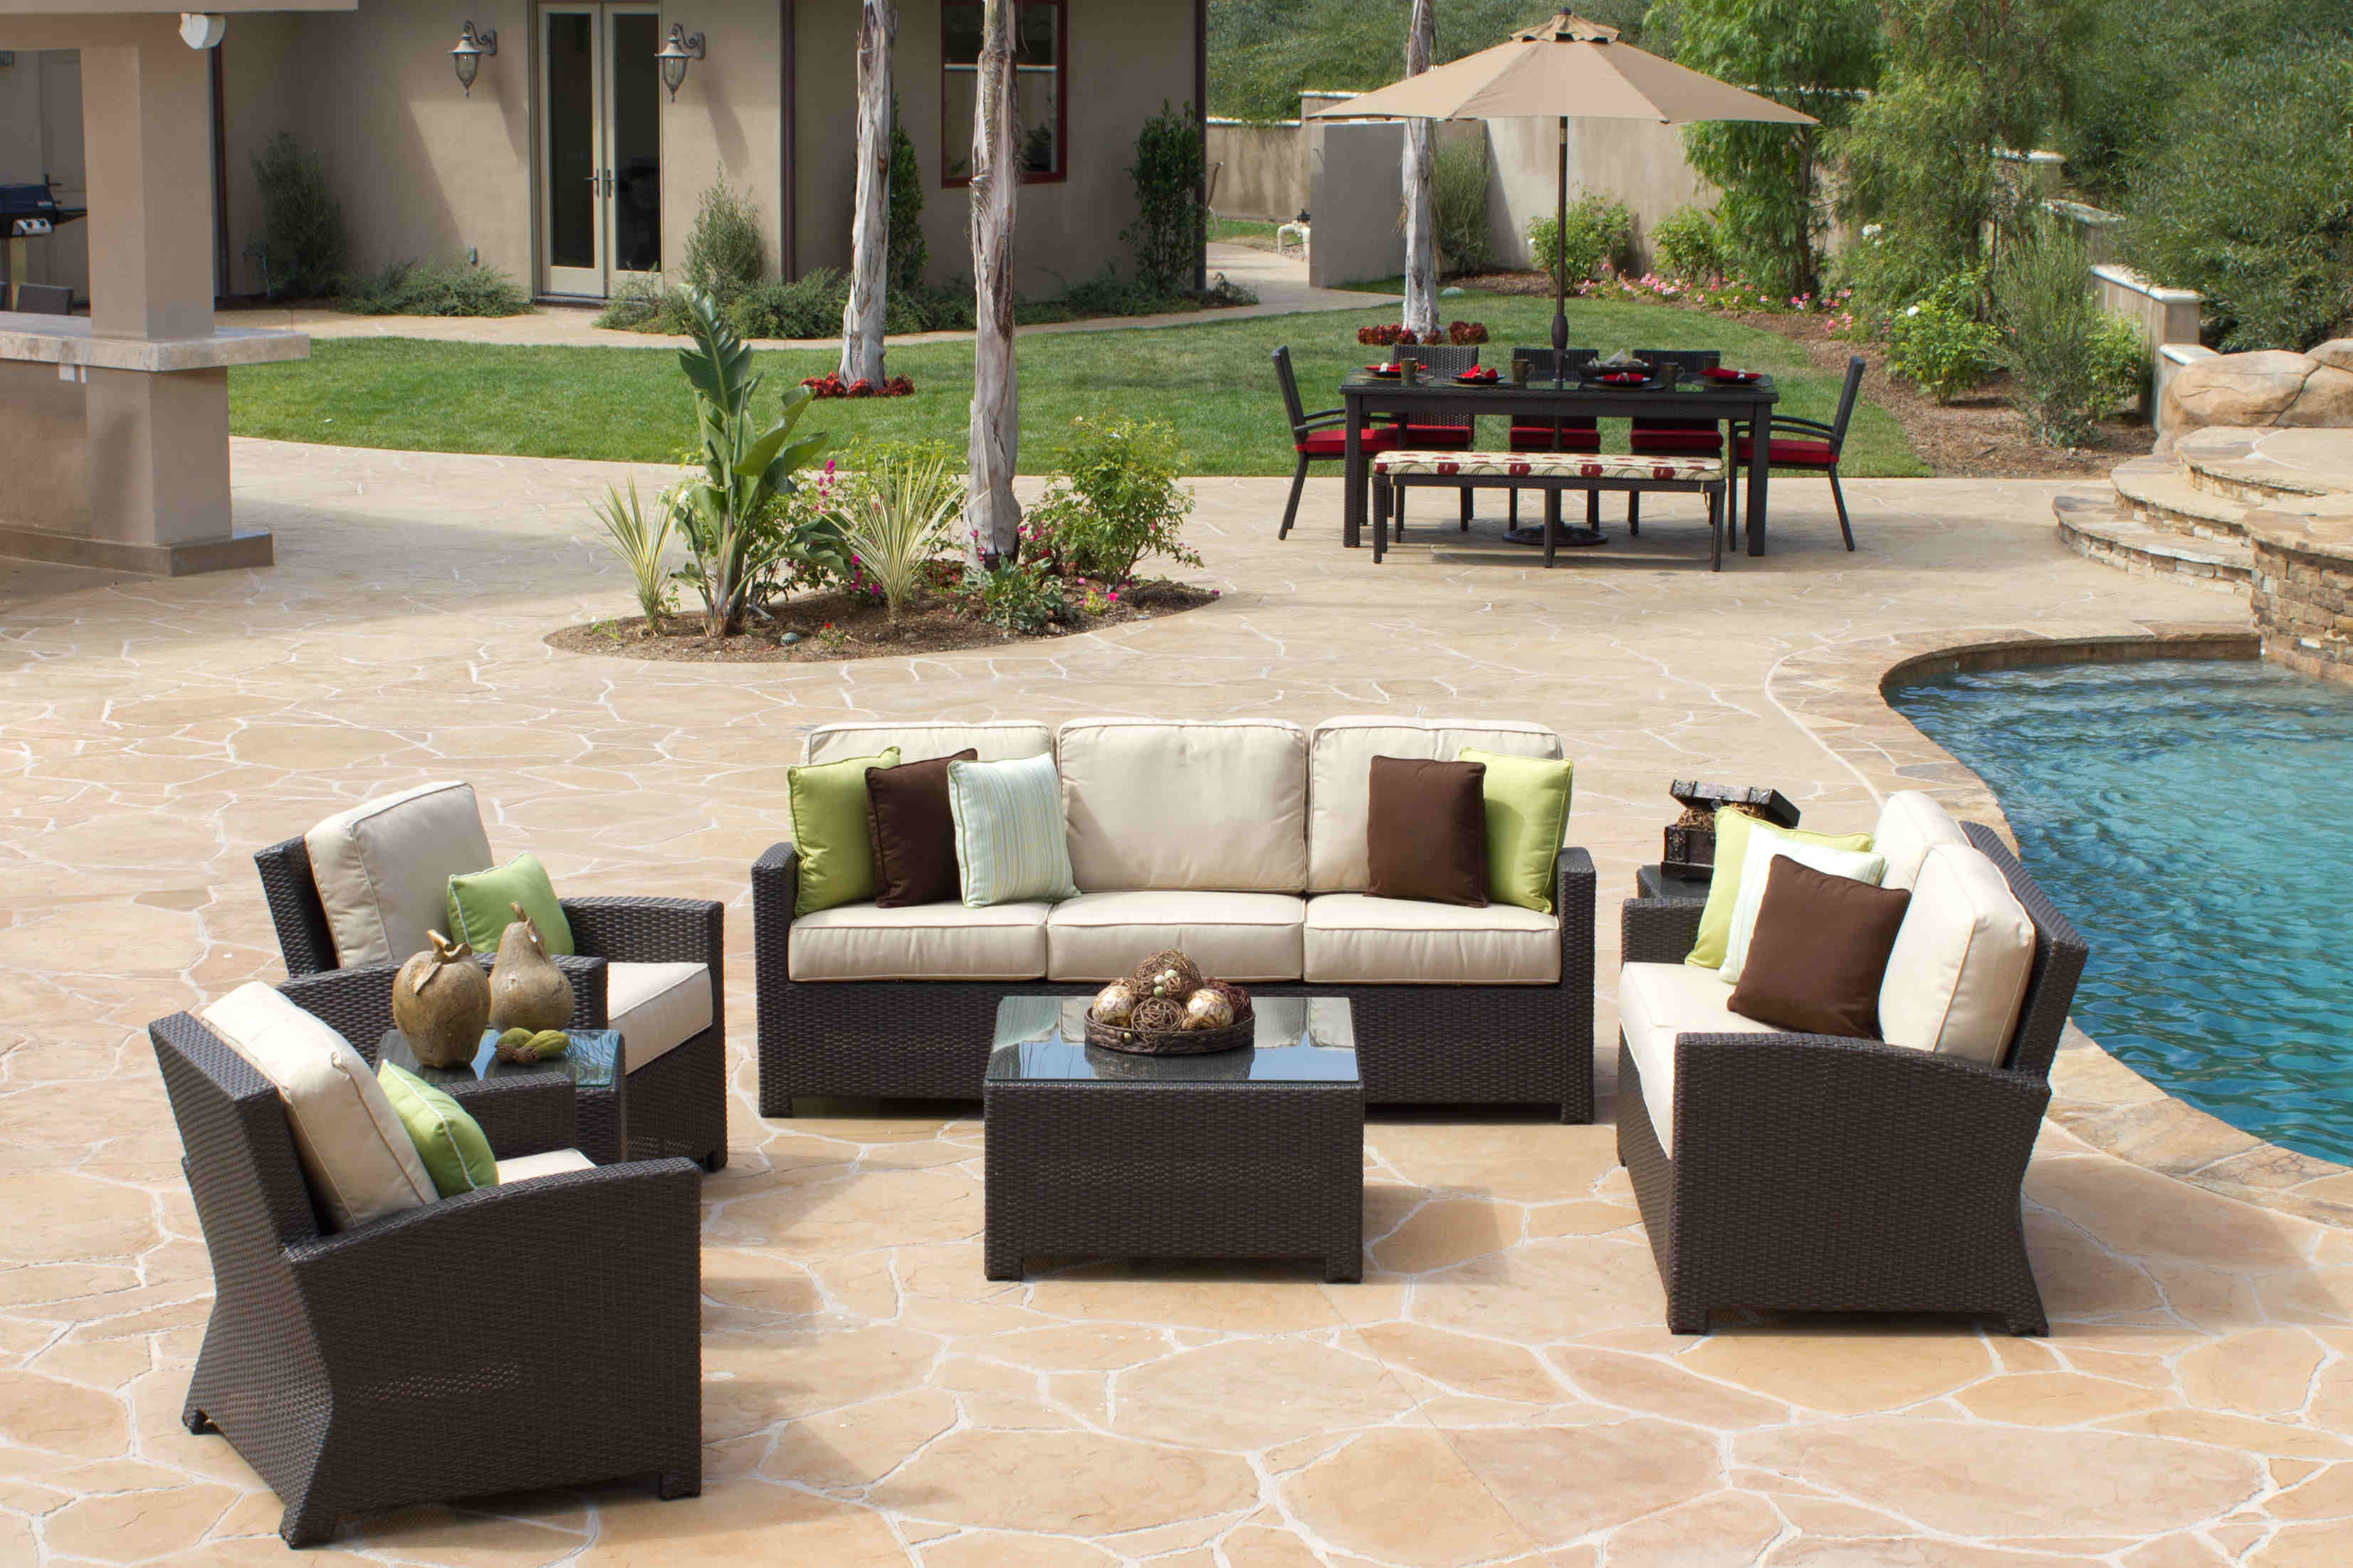 And Pool Furniture Patio